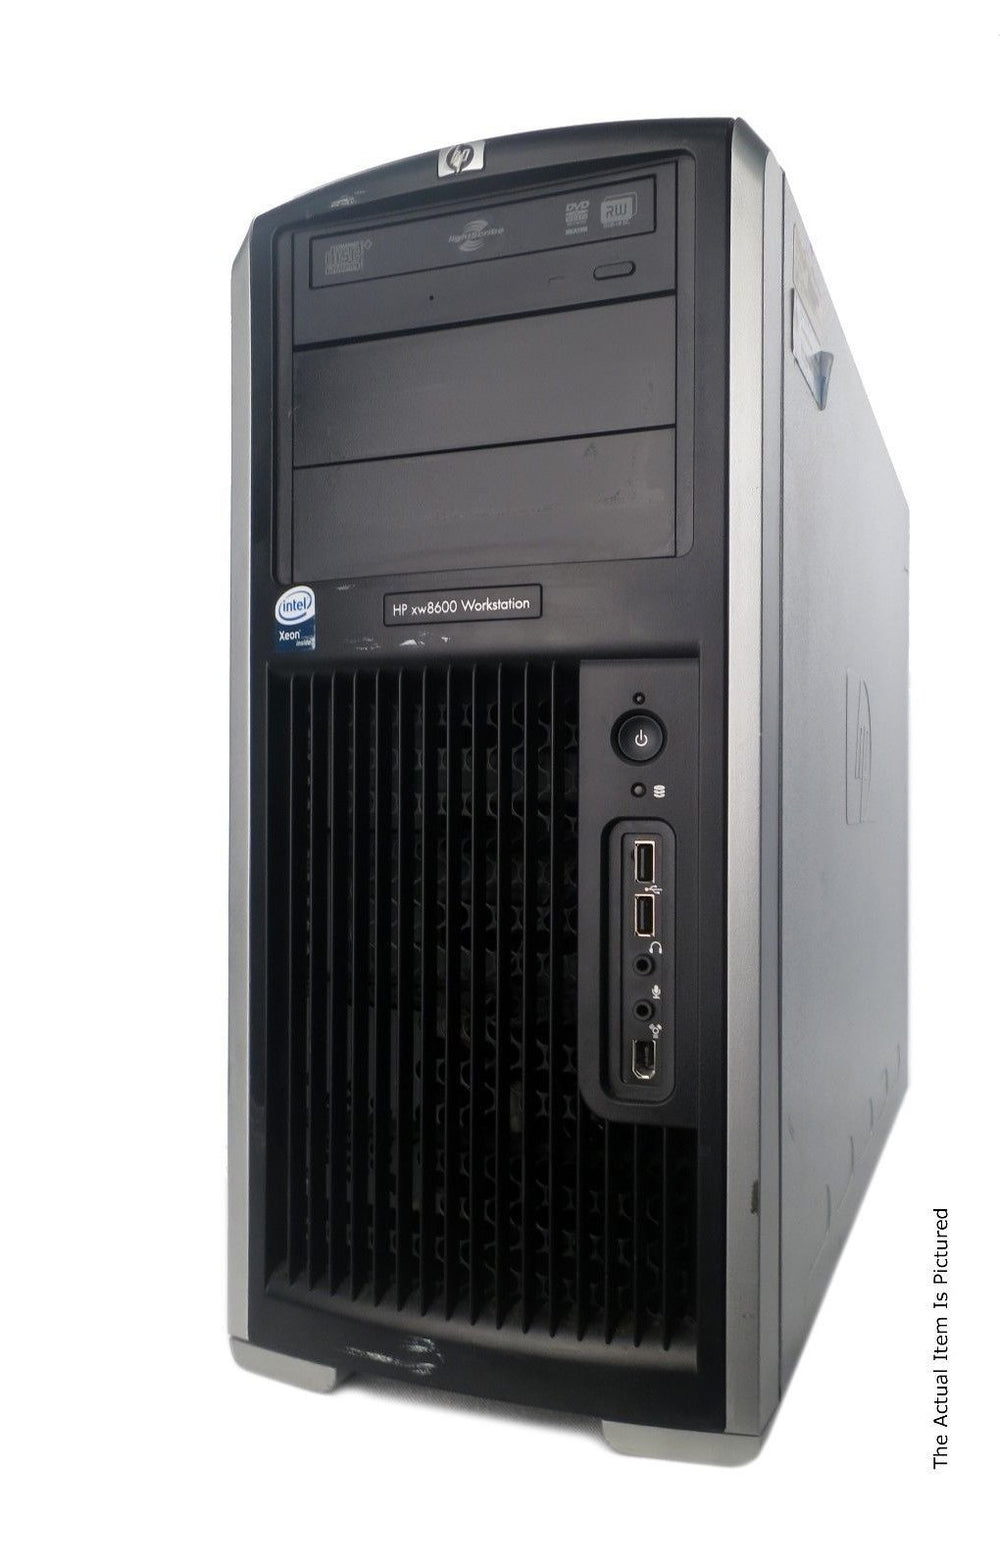 HP xw8600 Workstation 2x Xeons X5492 FX 4800 1TB 16GB - Bonanza Deals